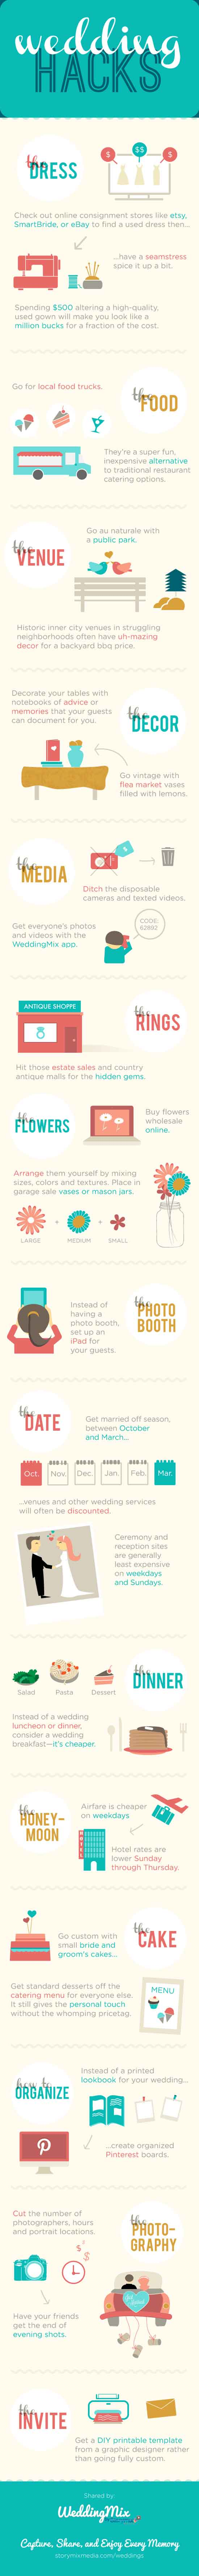 Top DIY Wedding Hacks Infographic @WeddingMix